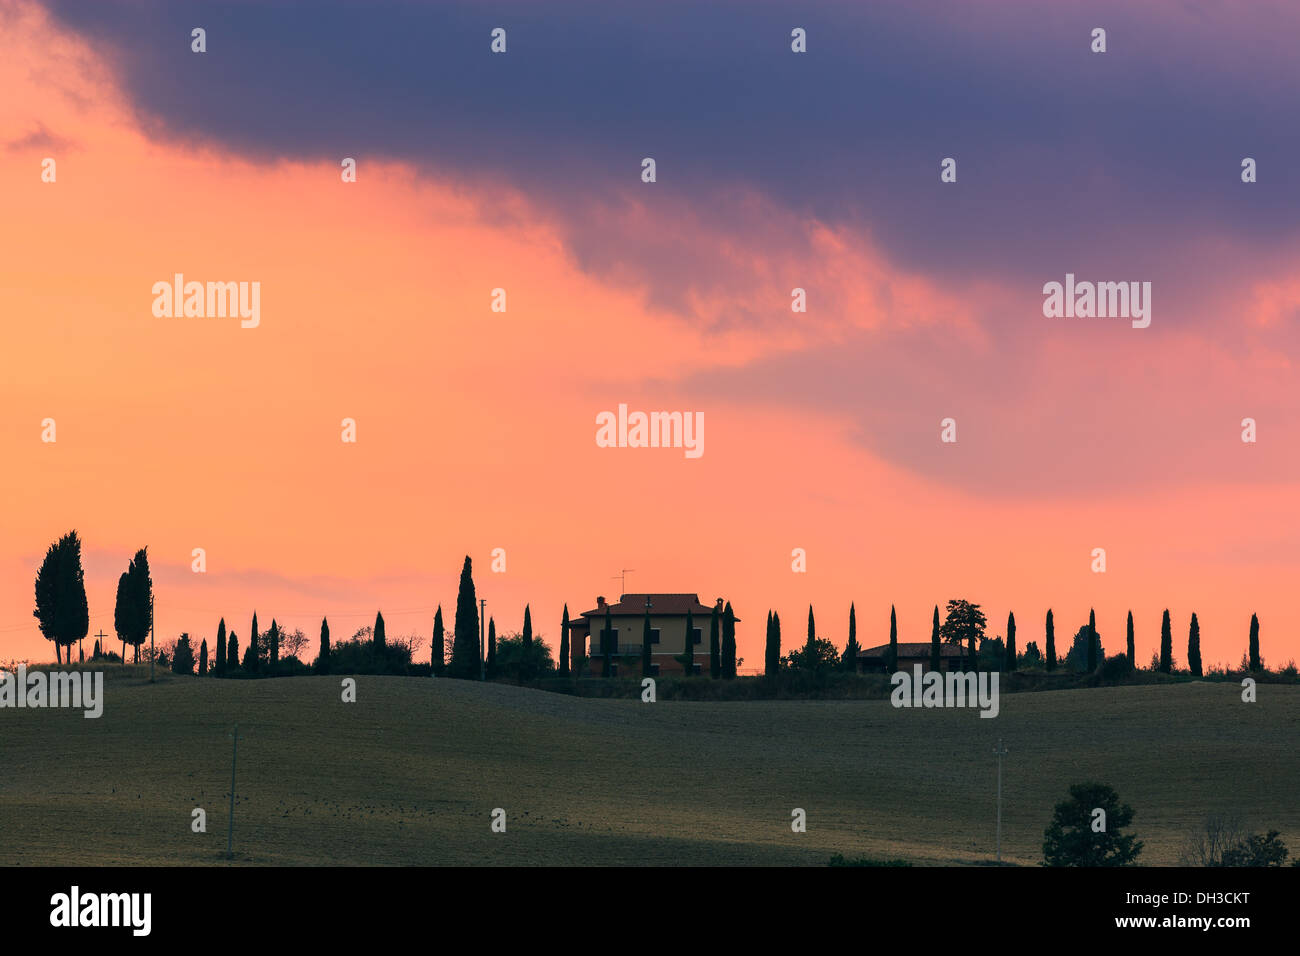 House with the famous Cypress trees in the heart of the Tuscany, near Pienza, Italy - Stock Image